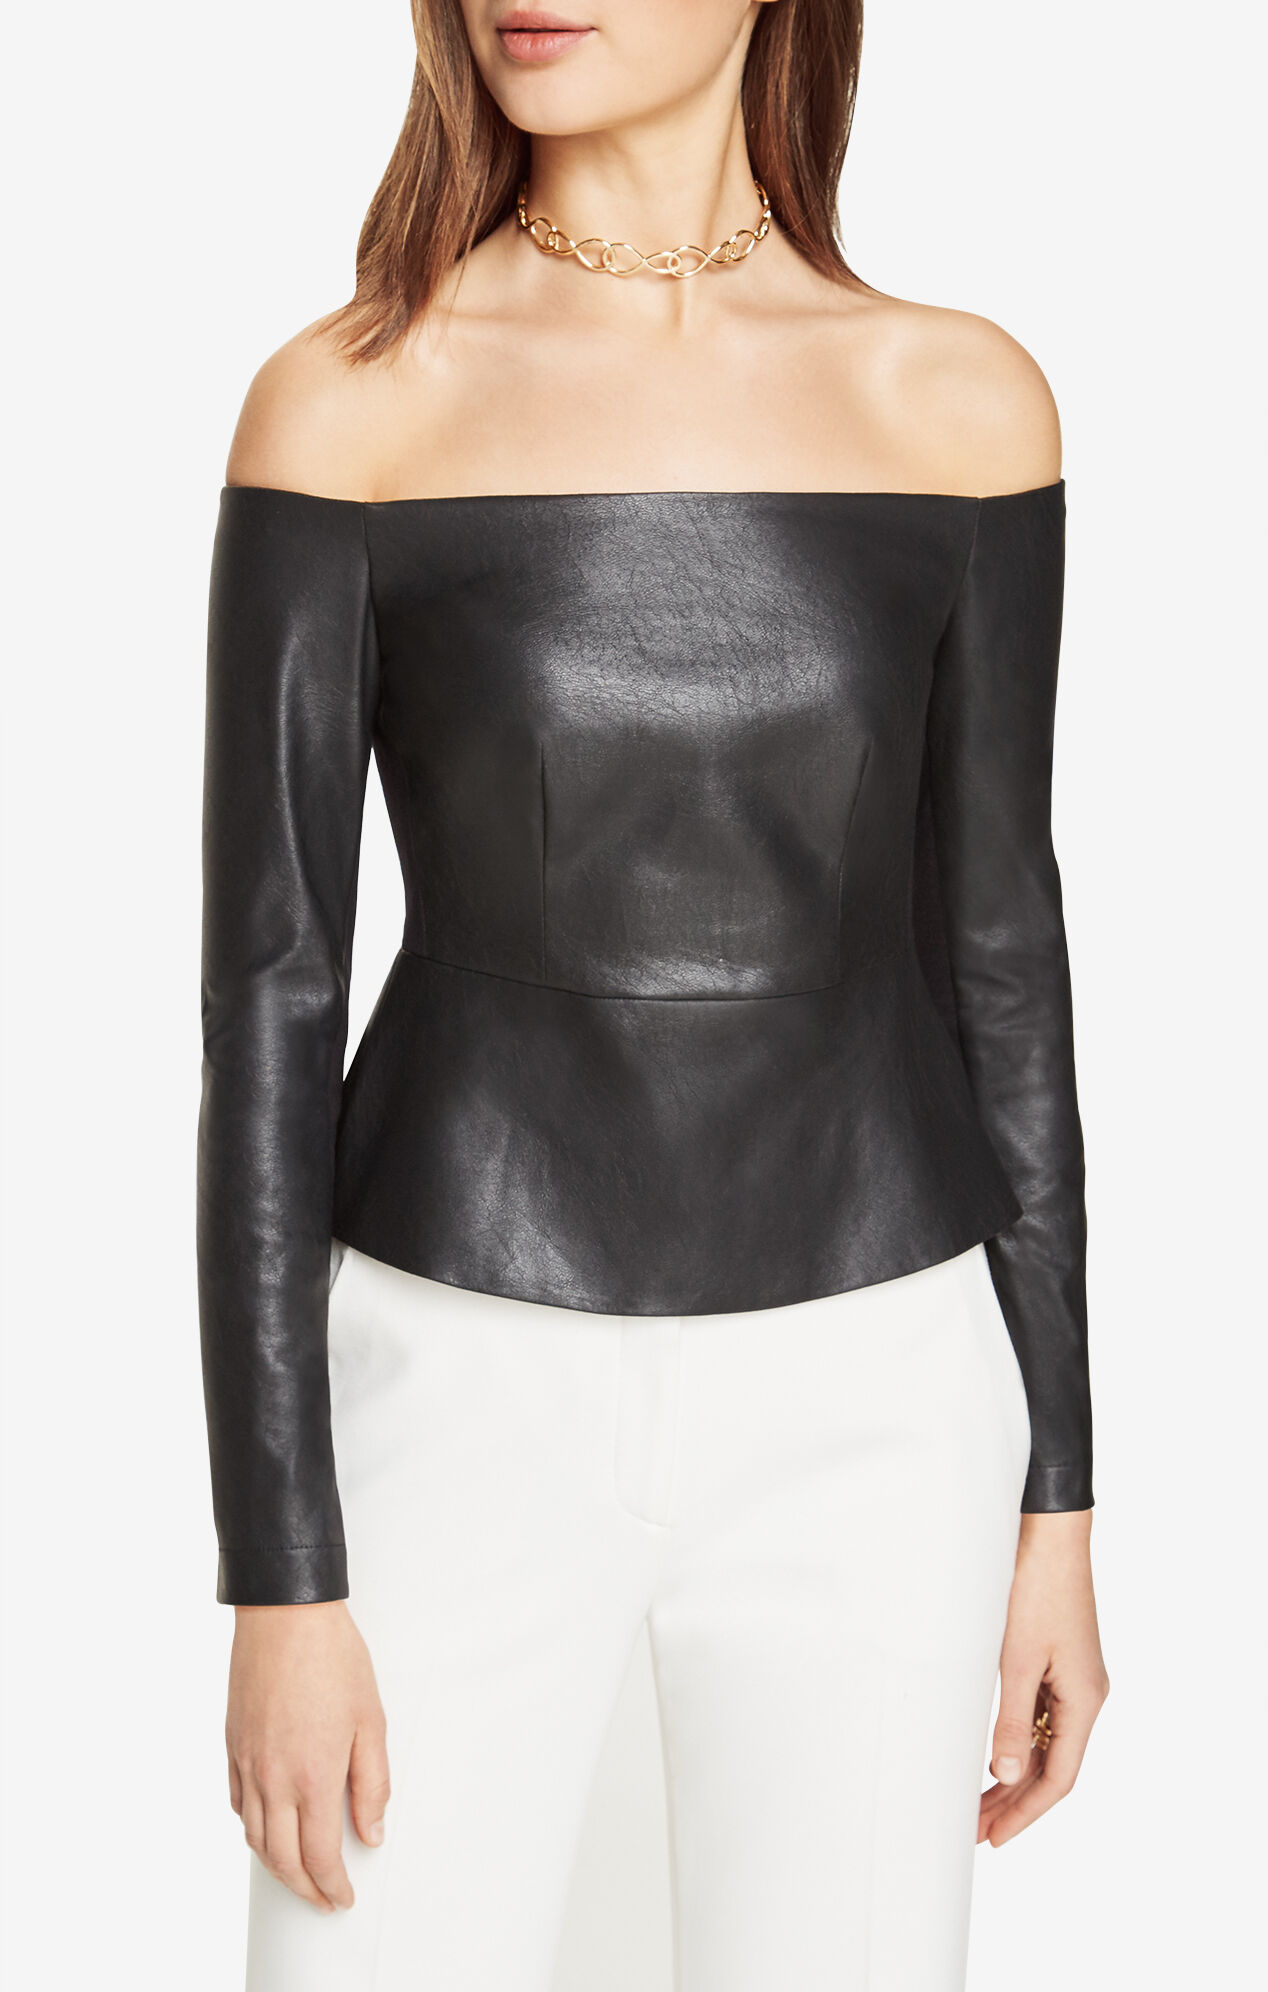 Sexy meets classy on this lovely liquid faux leather top! A flirty sweetheart V-neckline tops this figure flaunting number, while a pretty peplum shape at the waist gives this top some added flair!Padded and boned bustDetachable shoulder strapsBack zipper closure.